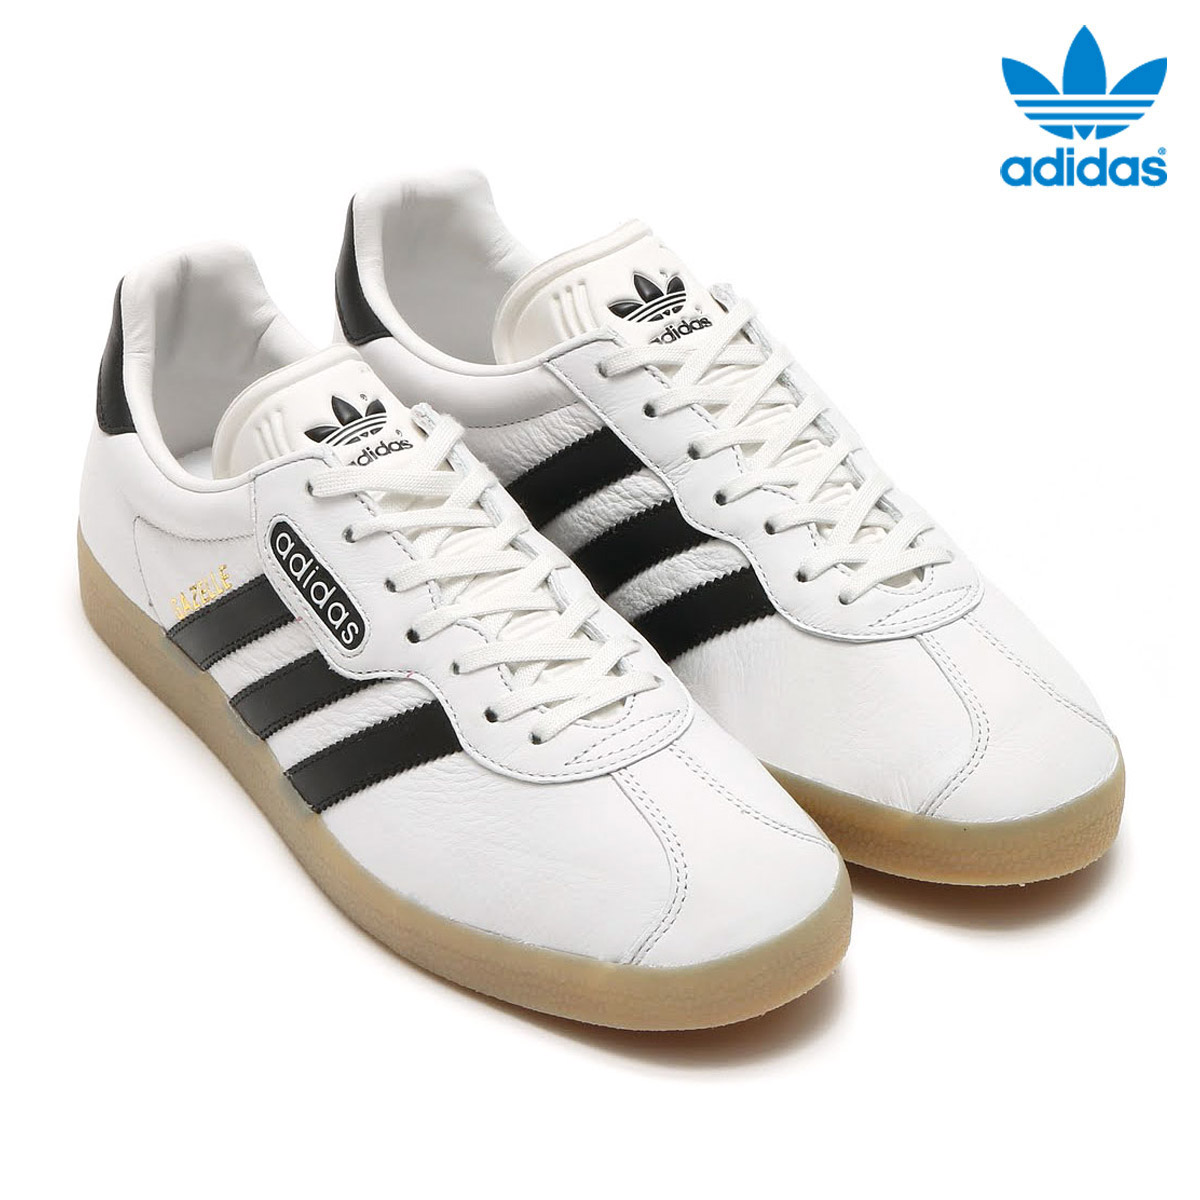 white leather adidas gazelle